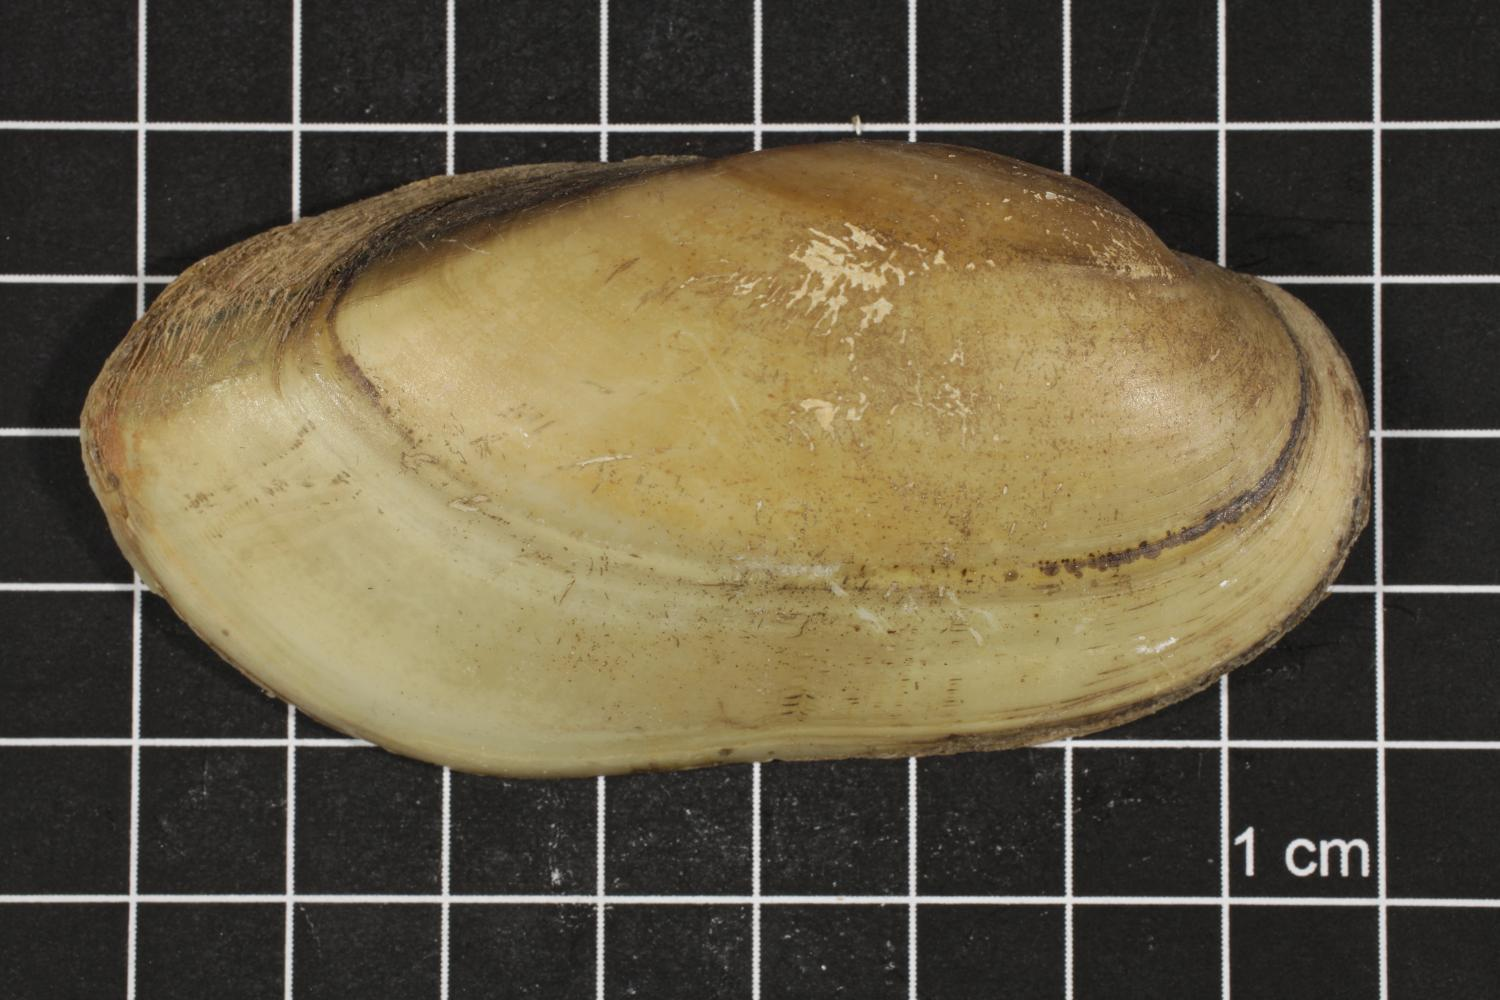 Lampsilis teres, Specimen #297                                                                                                      [Sequence #]: 3 of 6